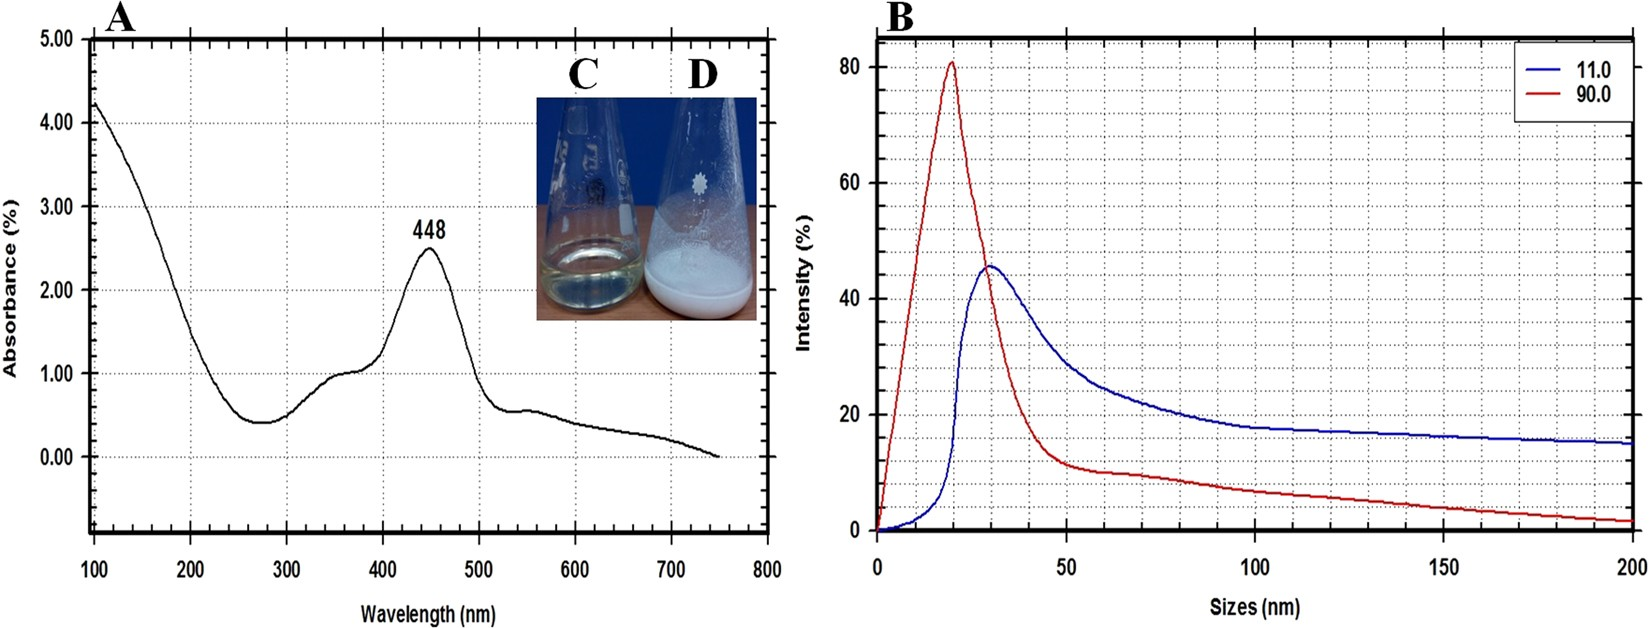 Bioprocessing Strategies For Cost Effective Large Scale Biogenic Wiring Diagram 700 434 Gas Valve Synthesis Of Nano Mgo From Endophytic Streptomyces Coelicolor Strain E72 As An